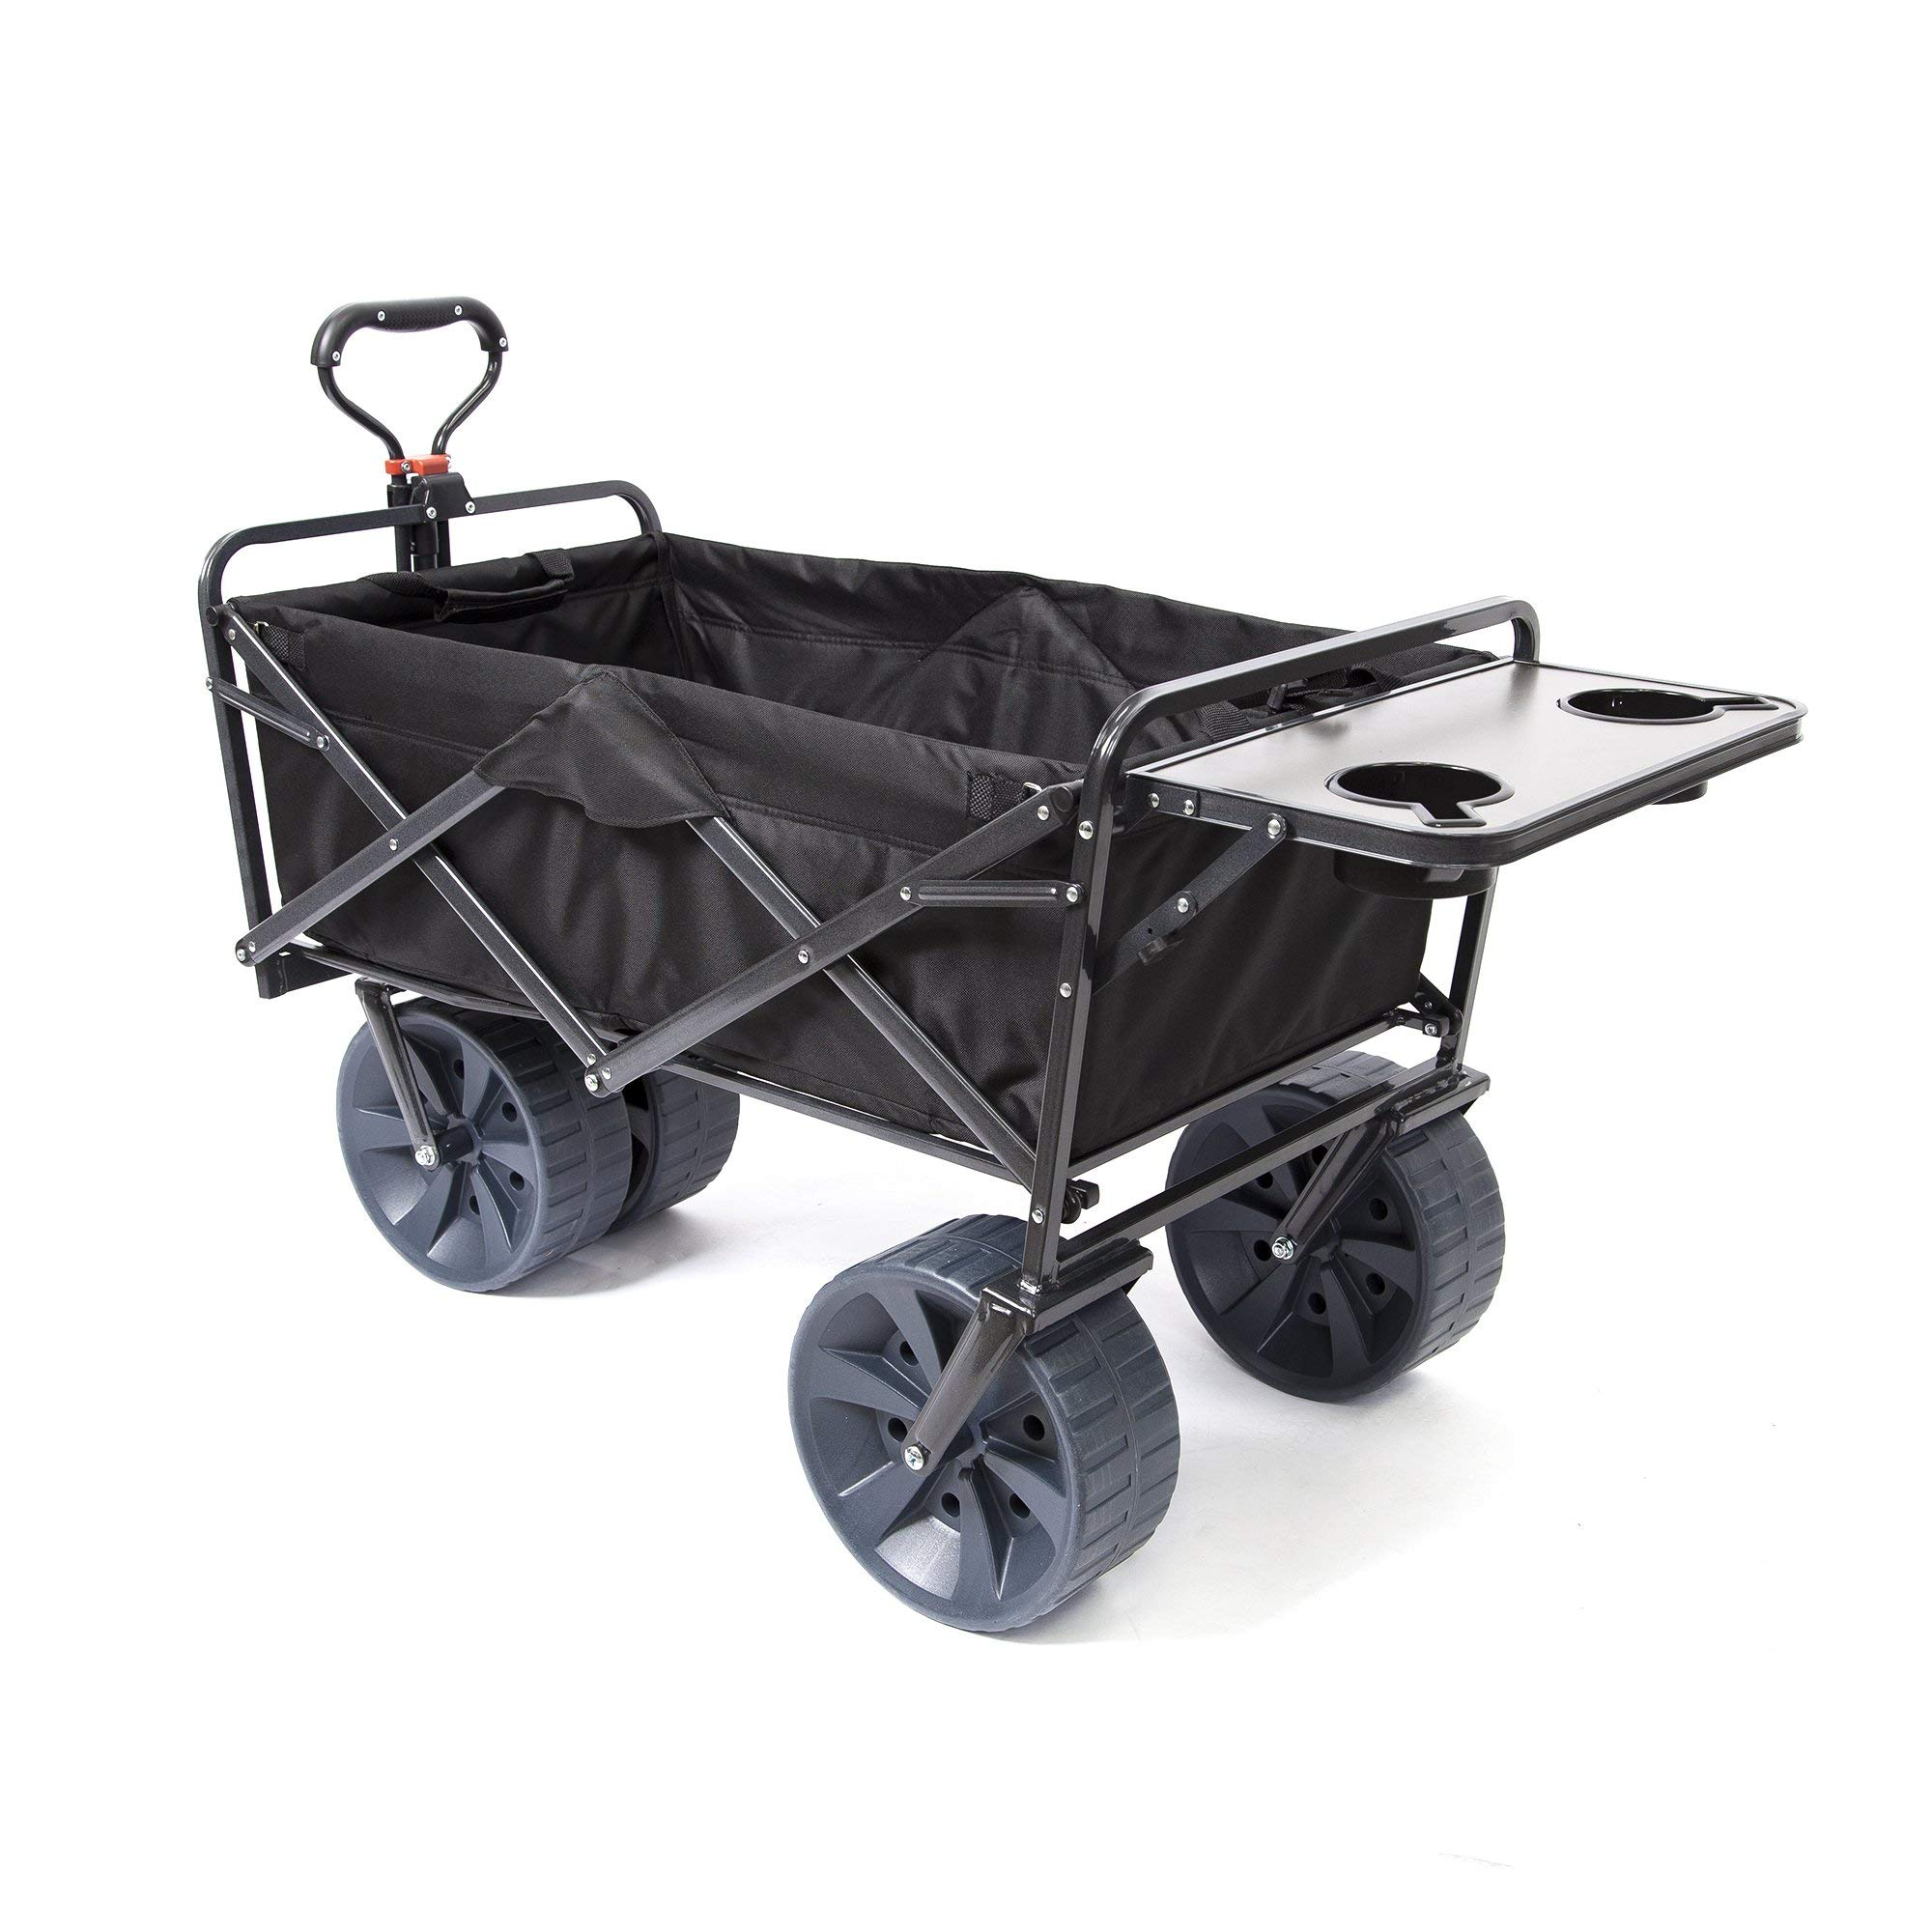 Details about Heavy Duty Collapsible Folding All Terrain Utility Wagon  Beach Cart with Table